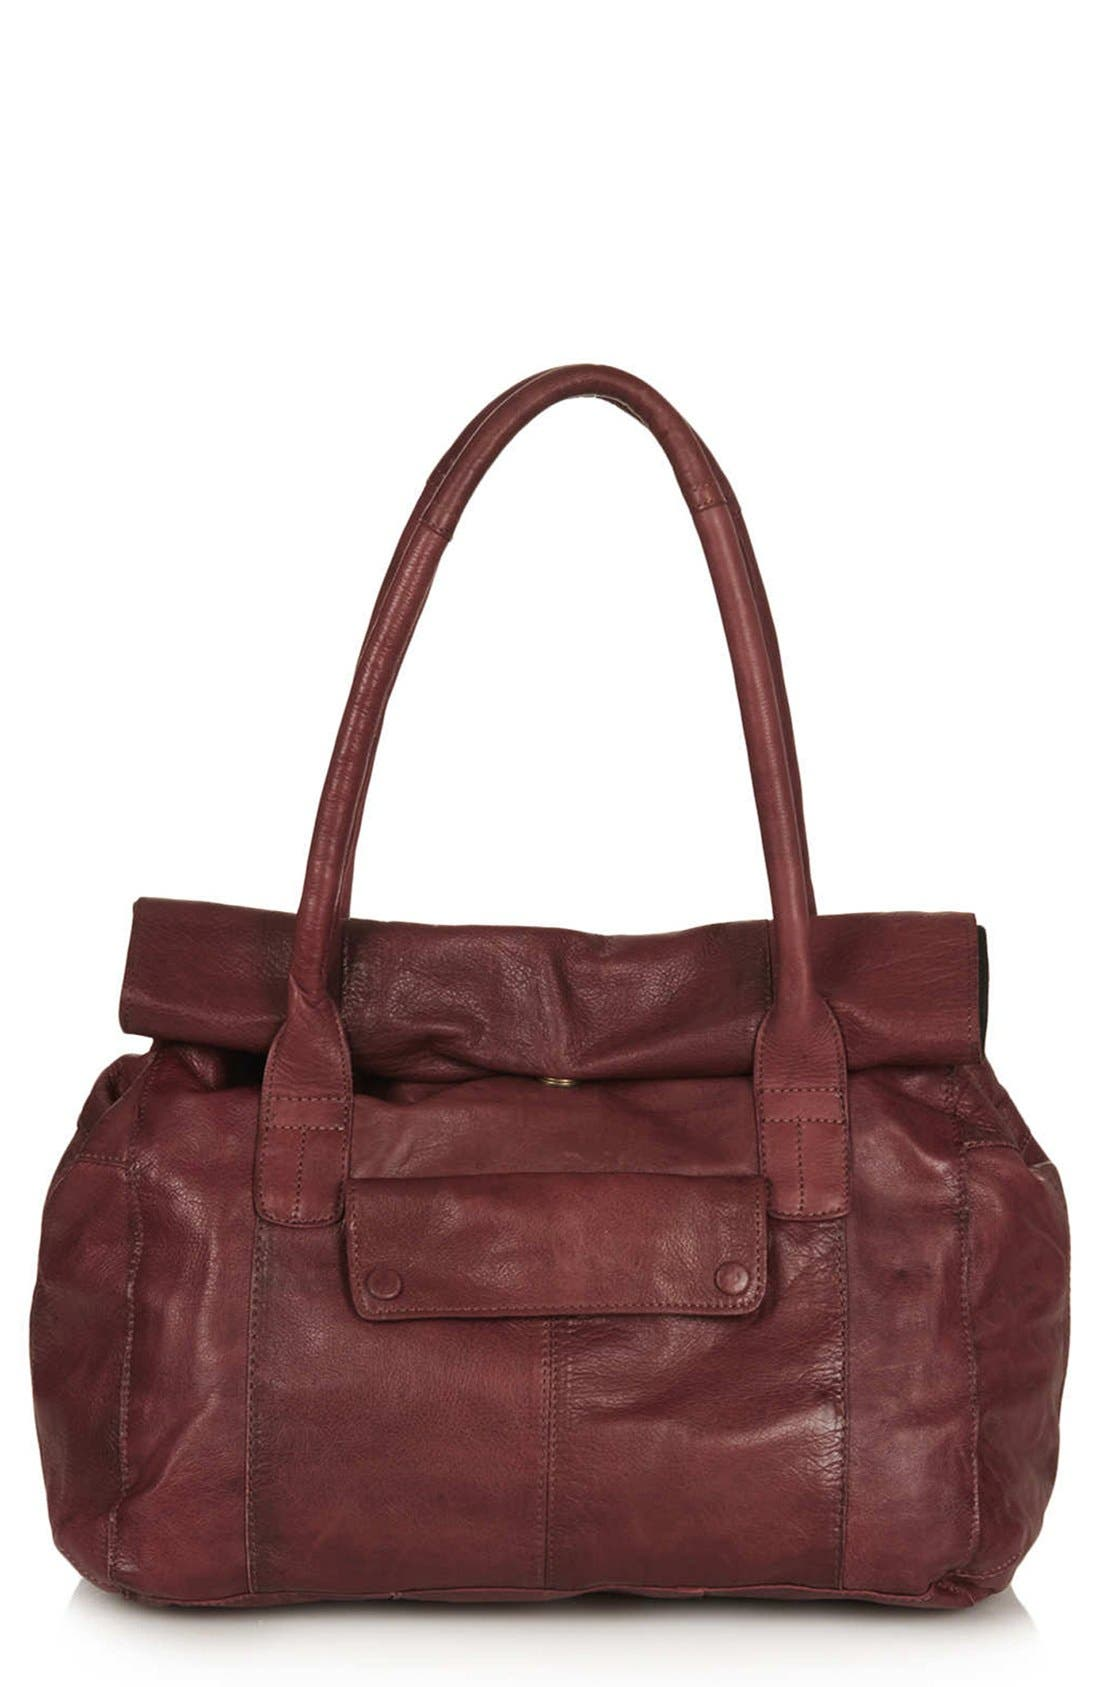 Alternate Image 1 Selected - Topshop Roll Top Leather Tote Bag